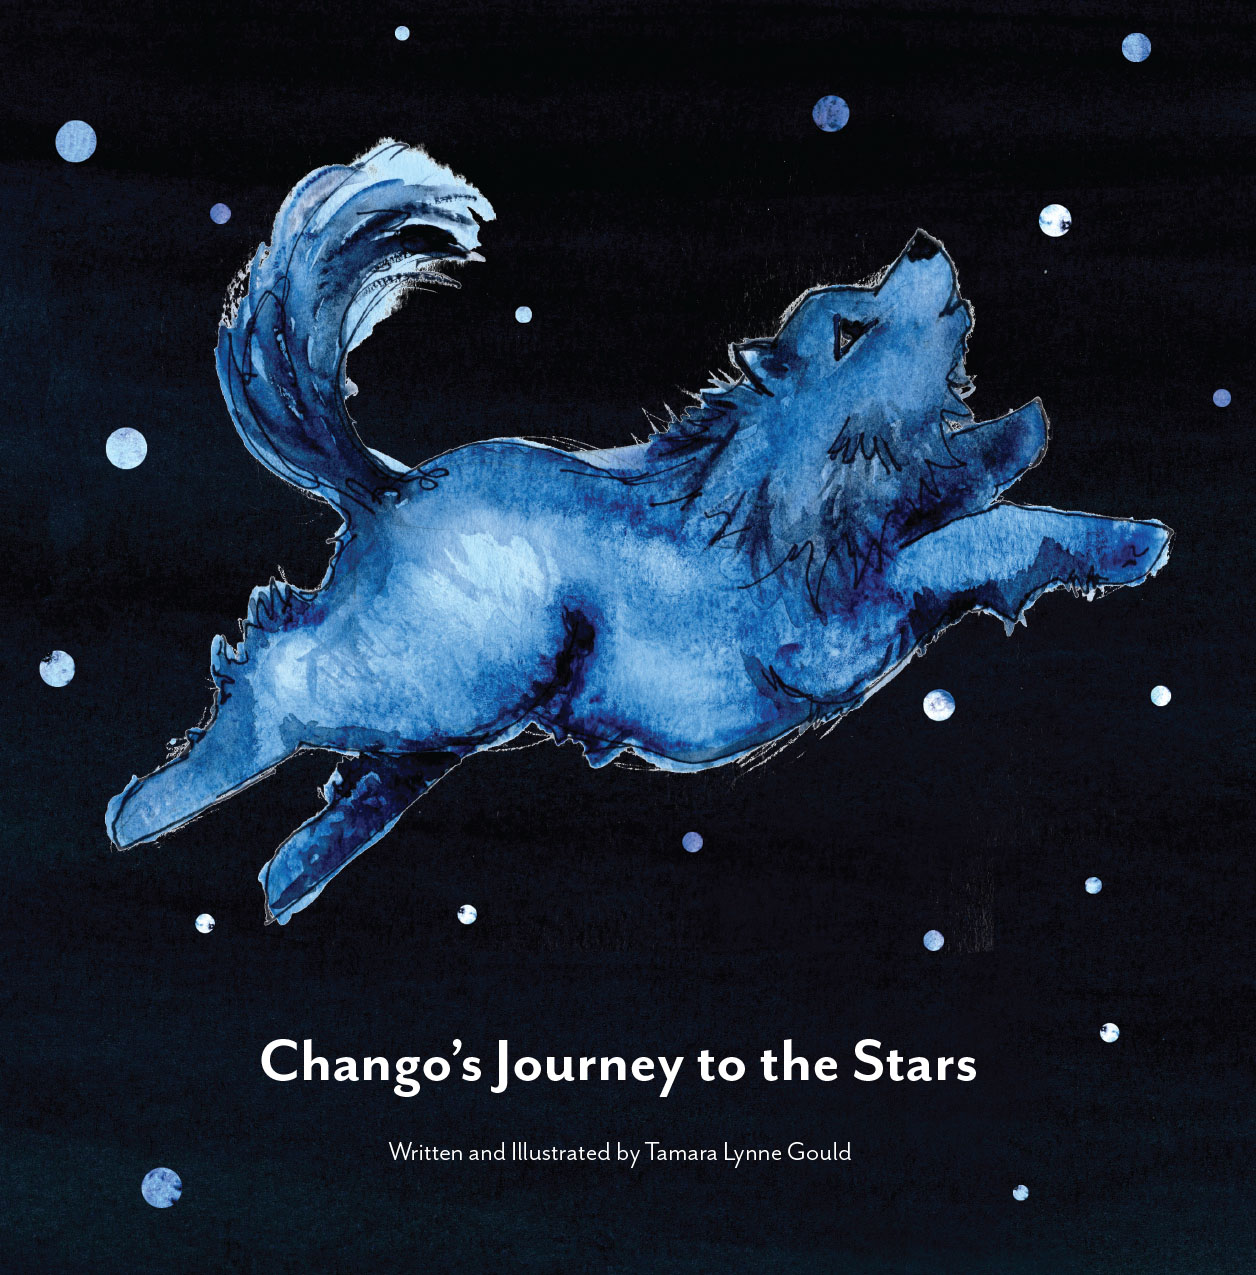 Chango's Journey to the Stars - Available now on Amazon, both print and Kindle!Paperback $12Kindle $2.99